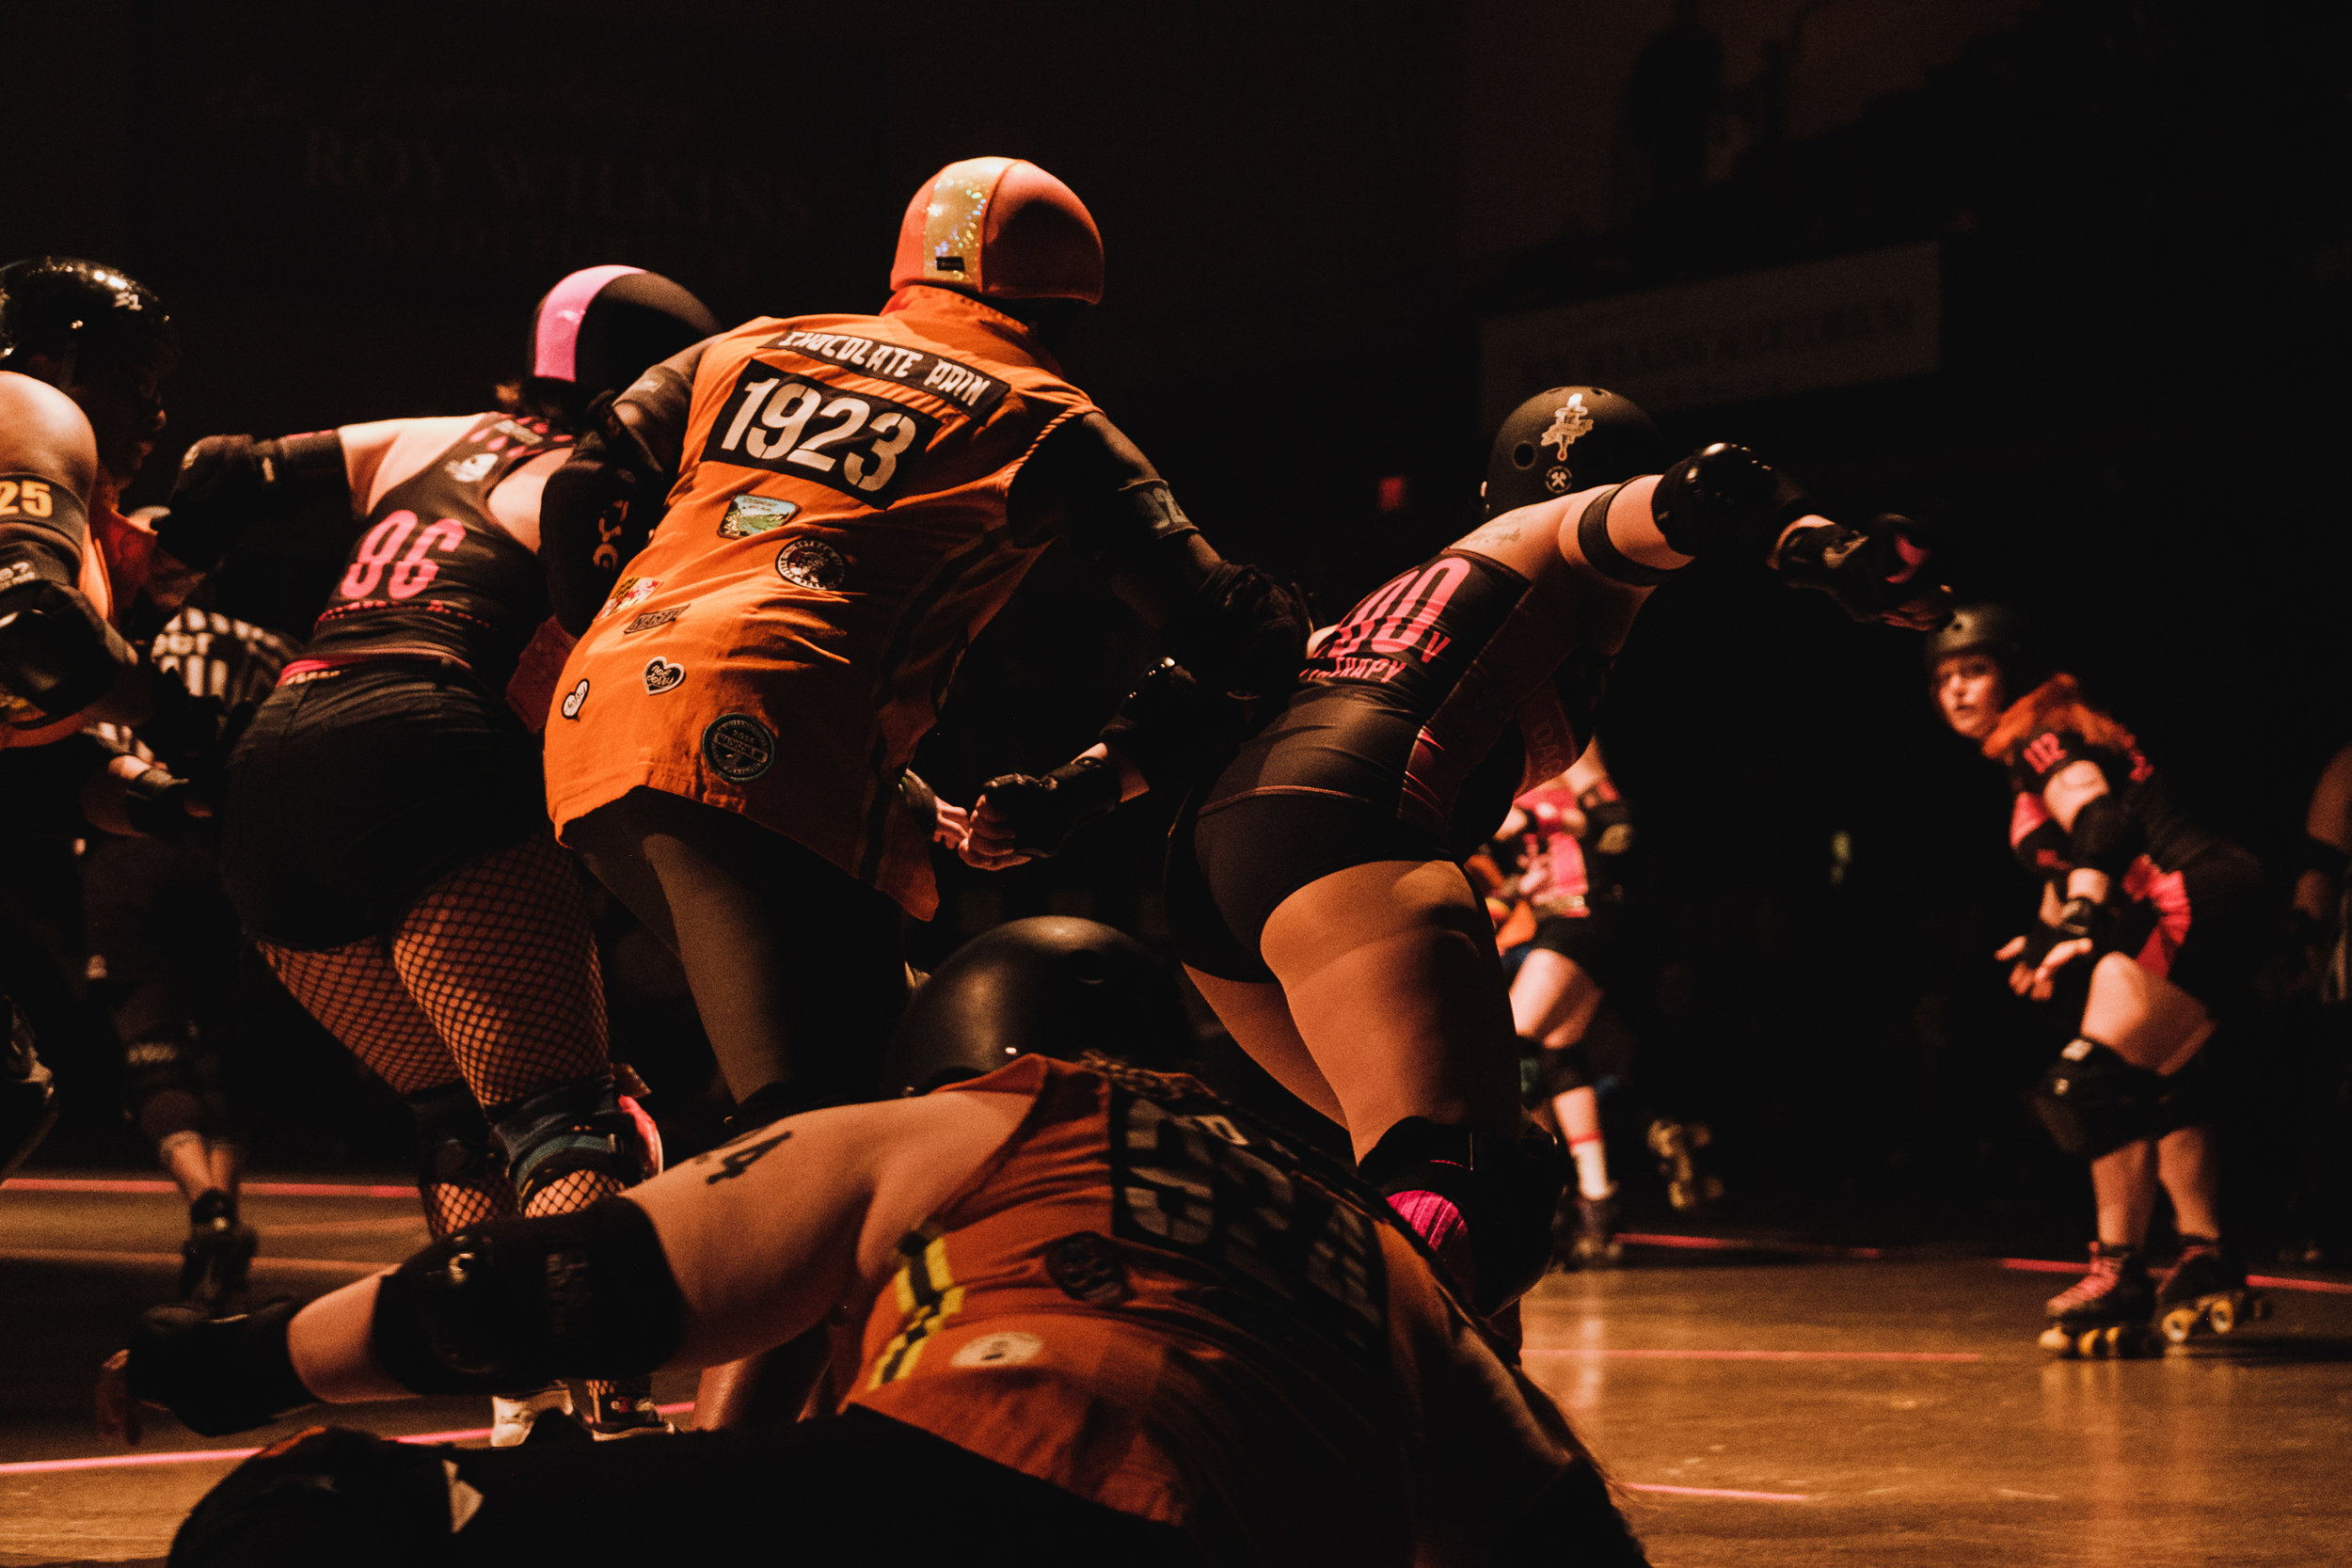 MNRG Season 15 Home Champs Bout (39 of 107).jpg